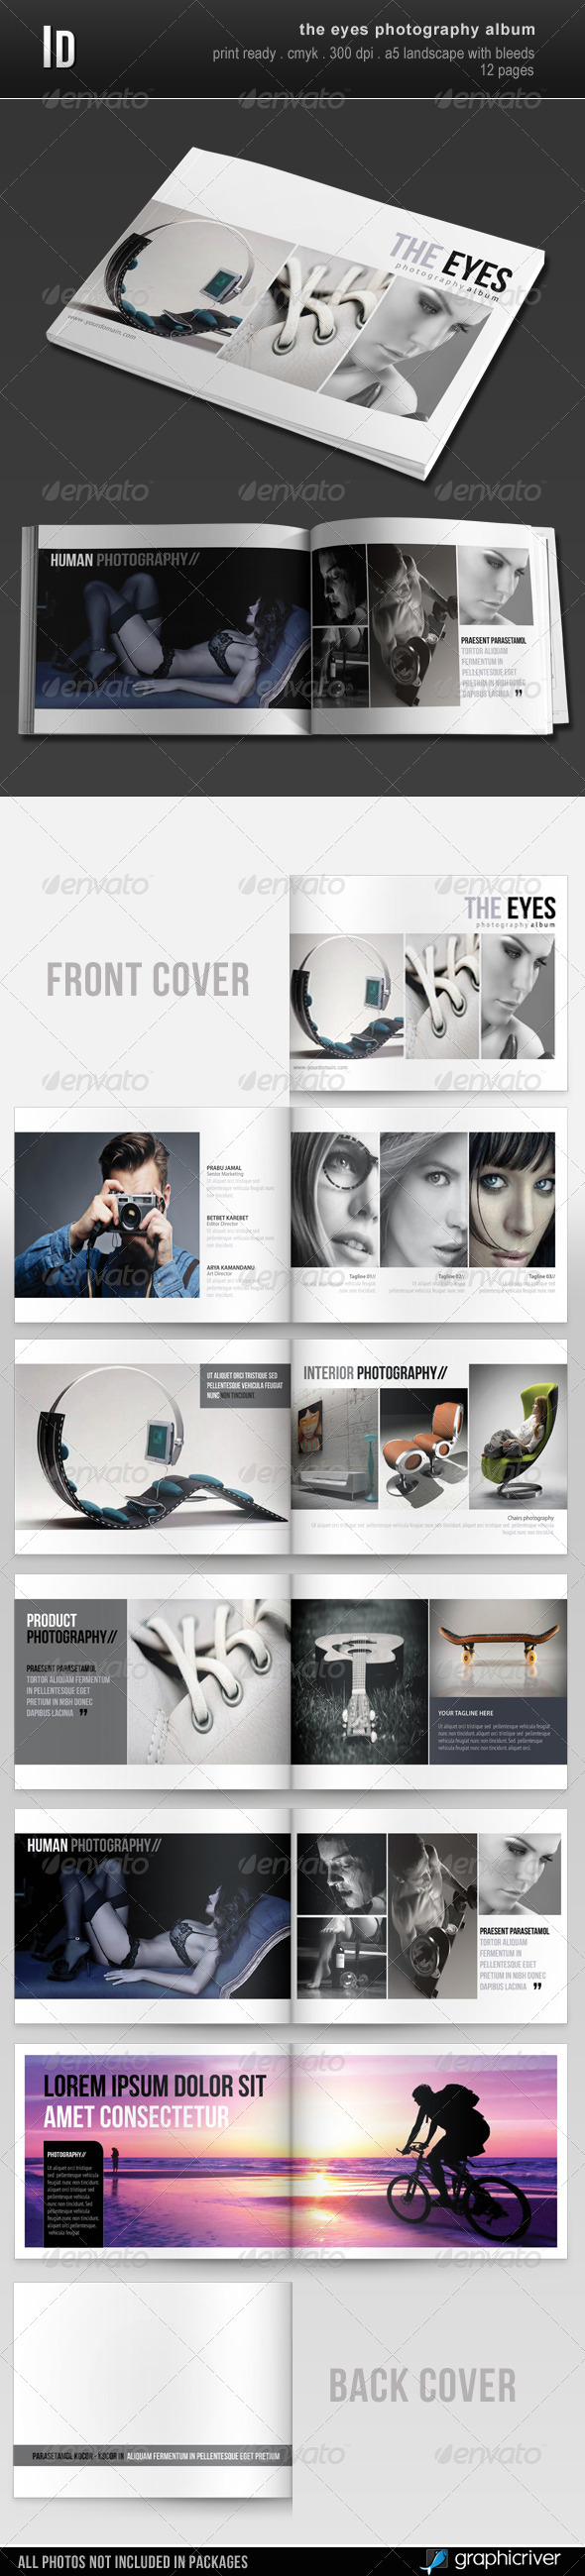 GraphicRiver The Eyes Photography Album 2823264